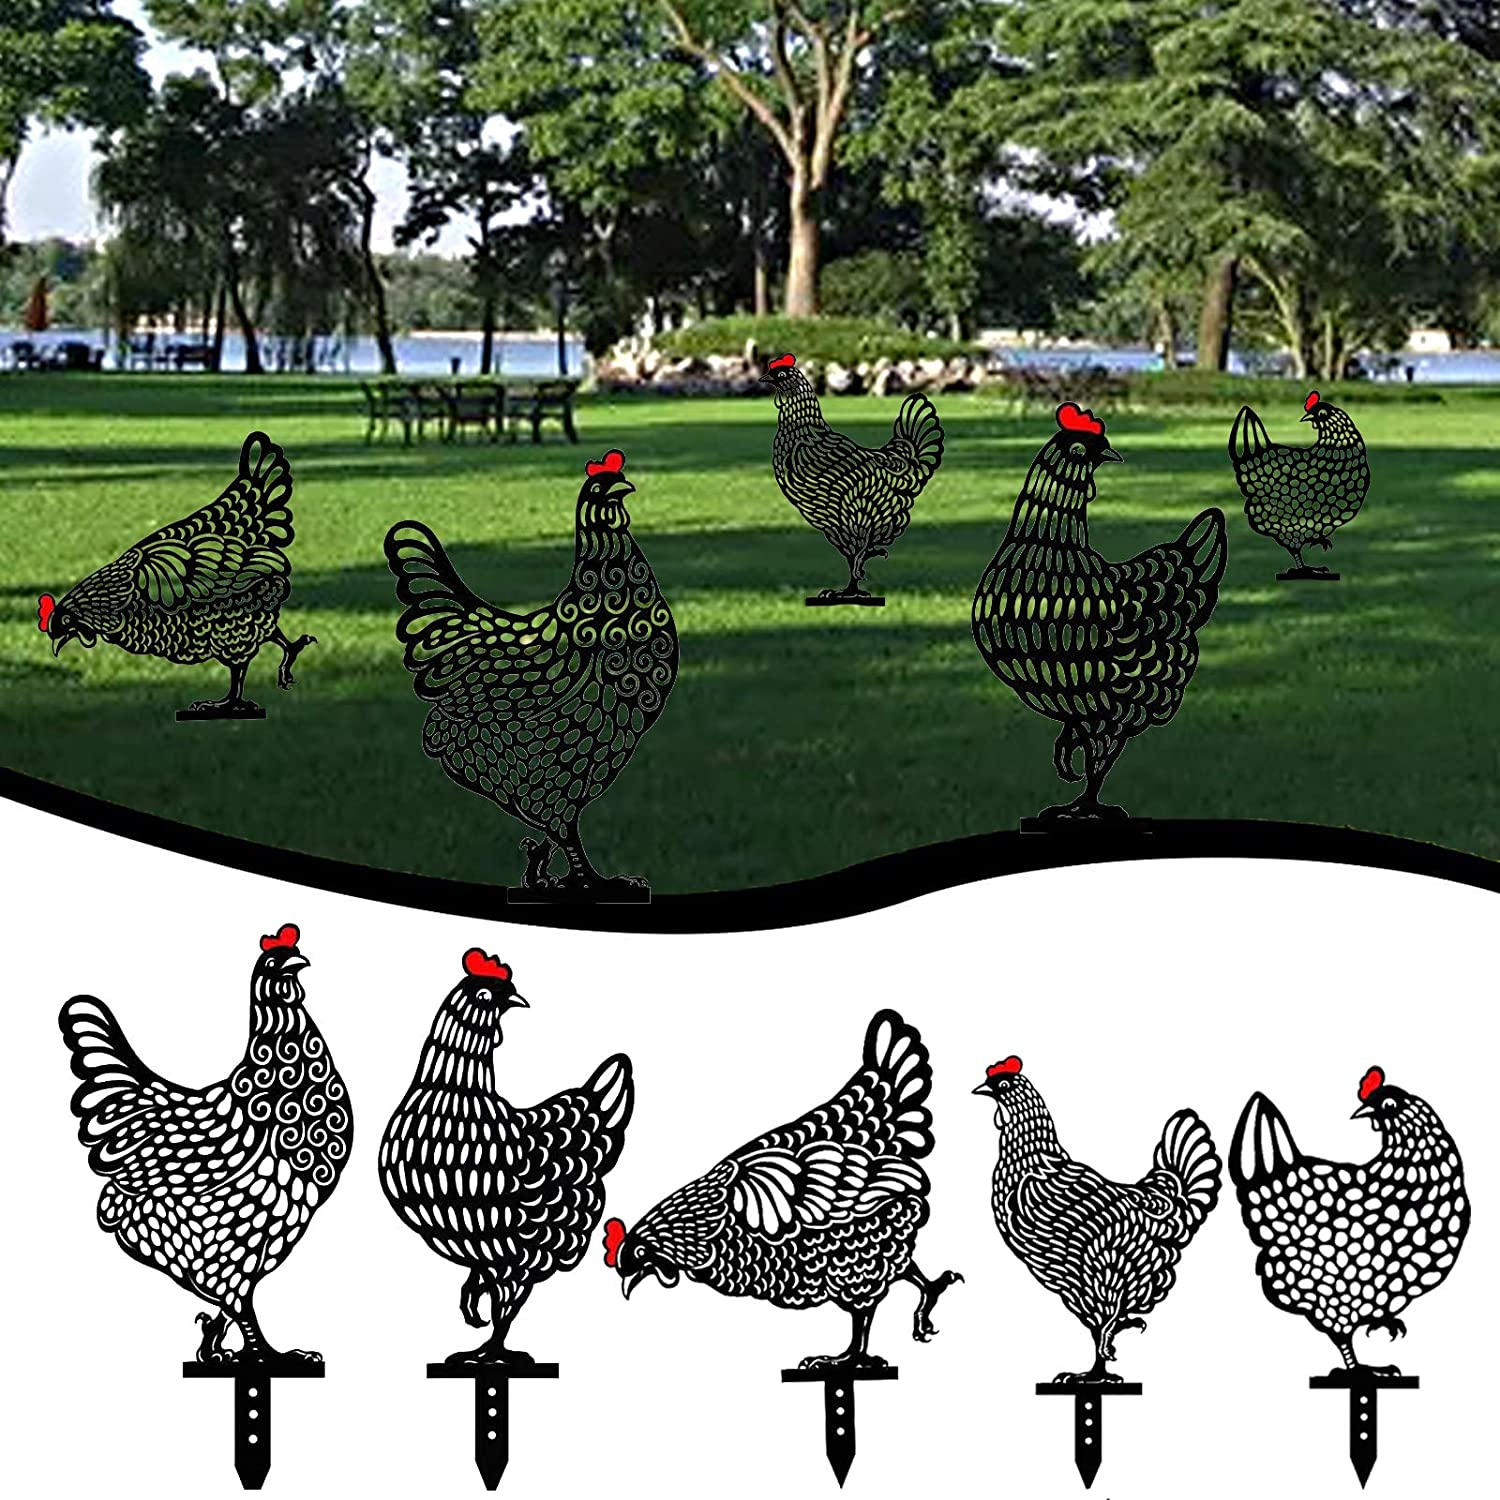 5PCS 10inch Acrylic Rooster Hen Decor, Hollow Out Rooster Animals Silhouette Statue Decor, Chicken Yard Art Garden Lawn Floor Decoration Ornament for Easter Outdoor Pathway Sidewalk Backyards